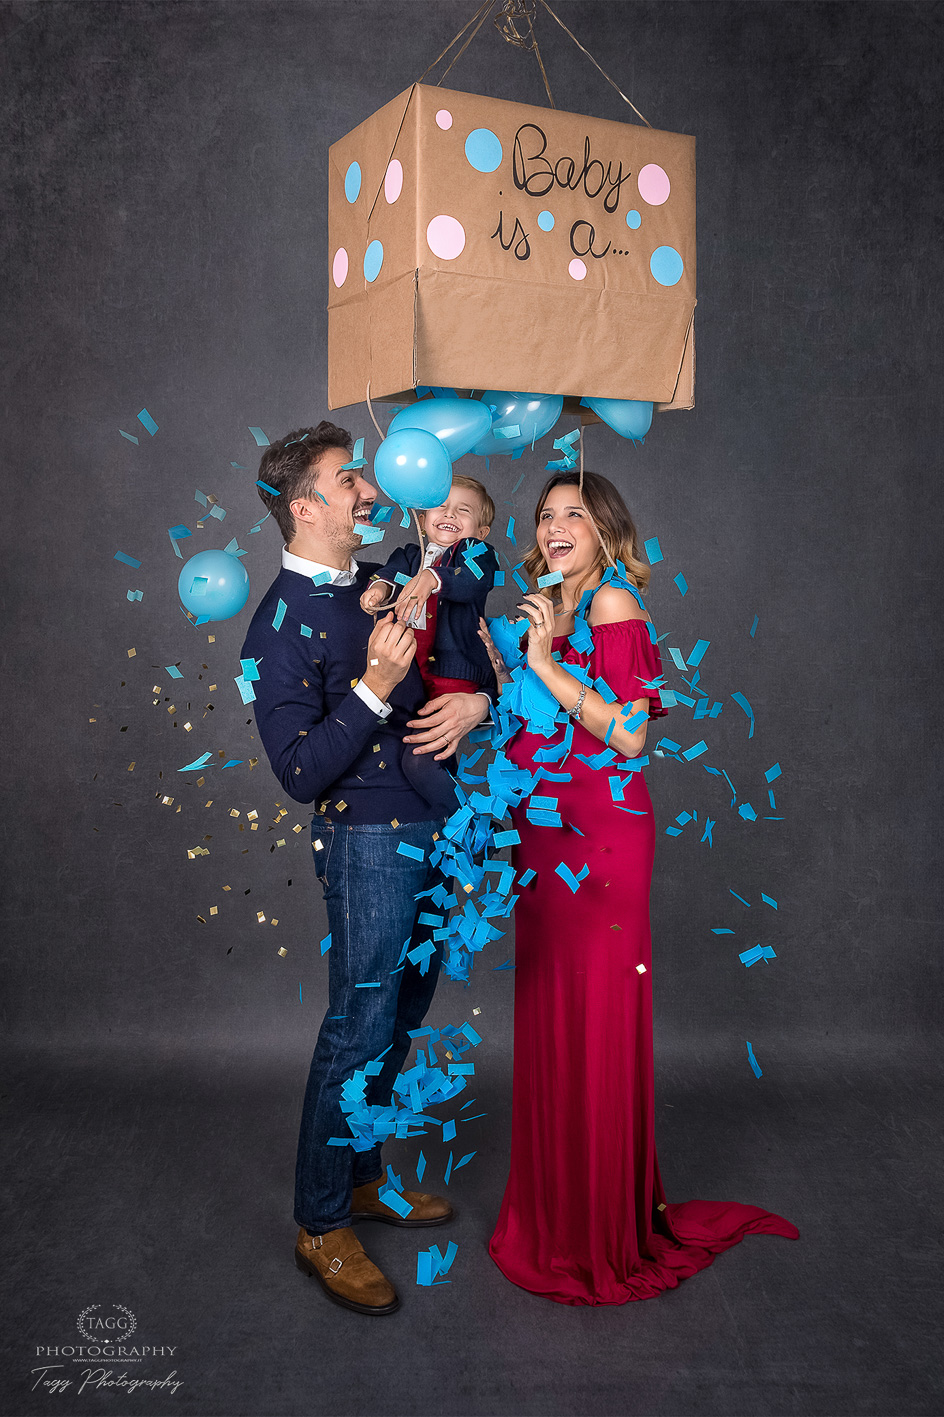 gender-reveal-servizio-foto-tagg-photography-19